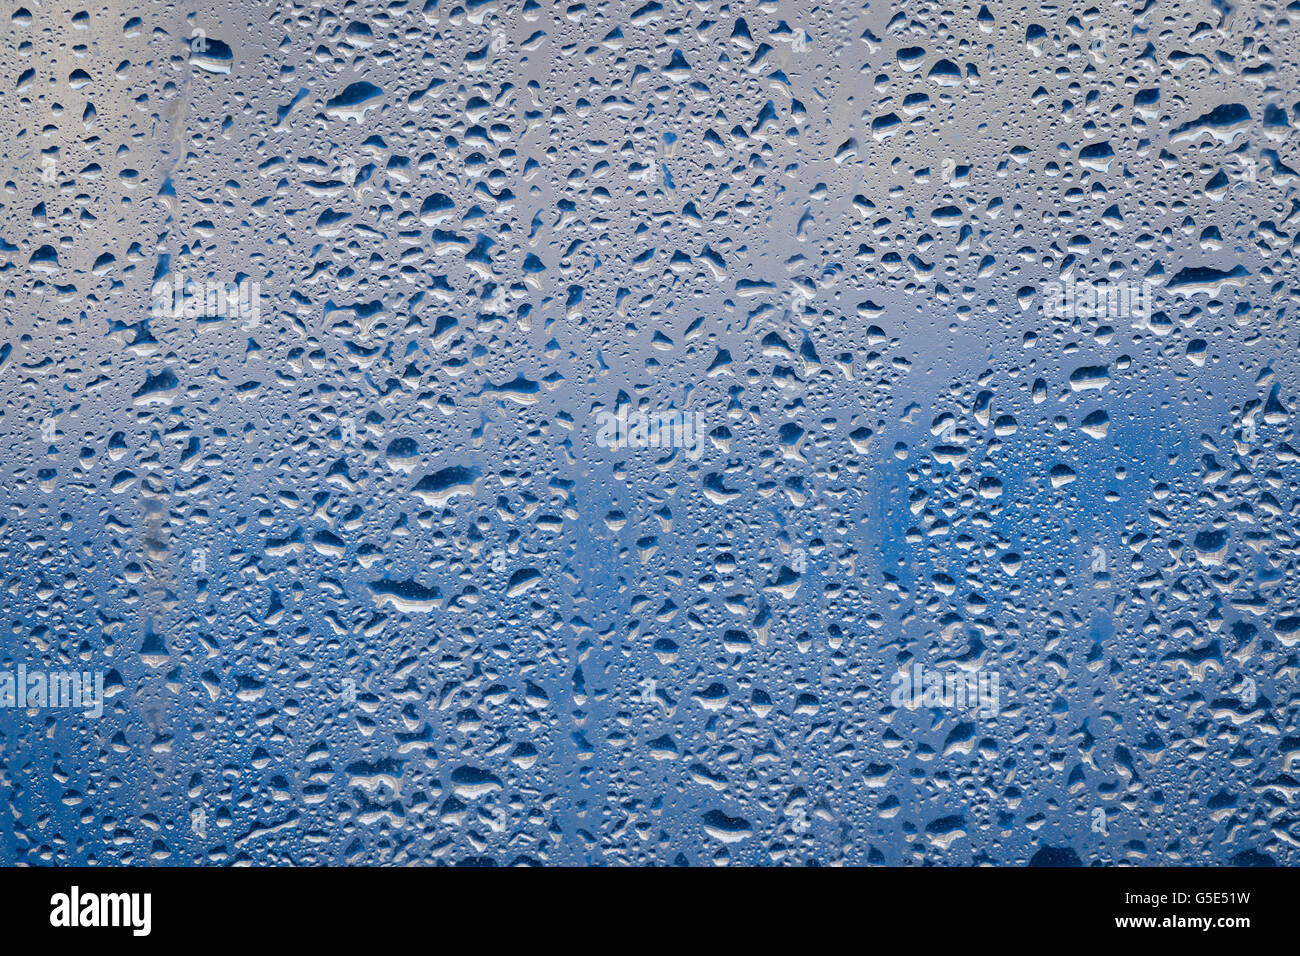 Water drops on a window pane in front of blue background - Stock Image